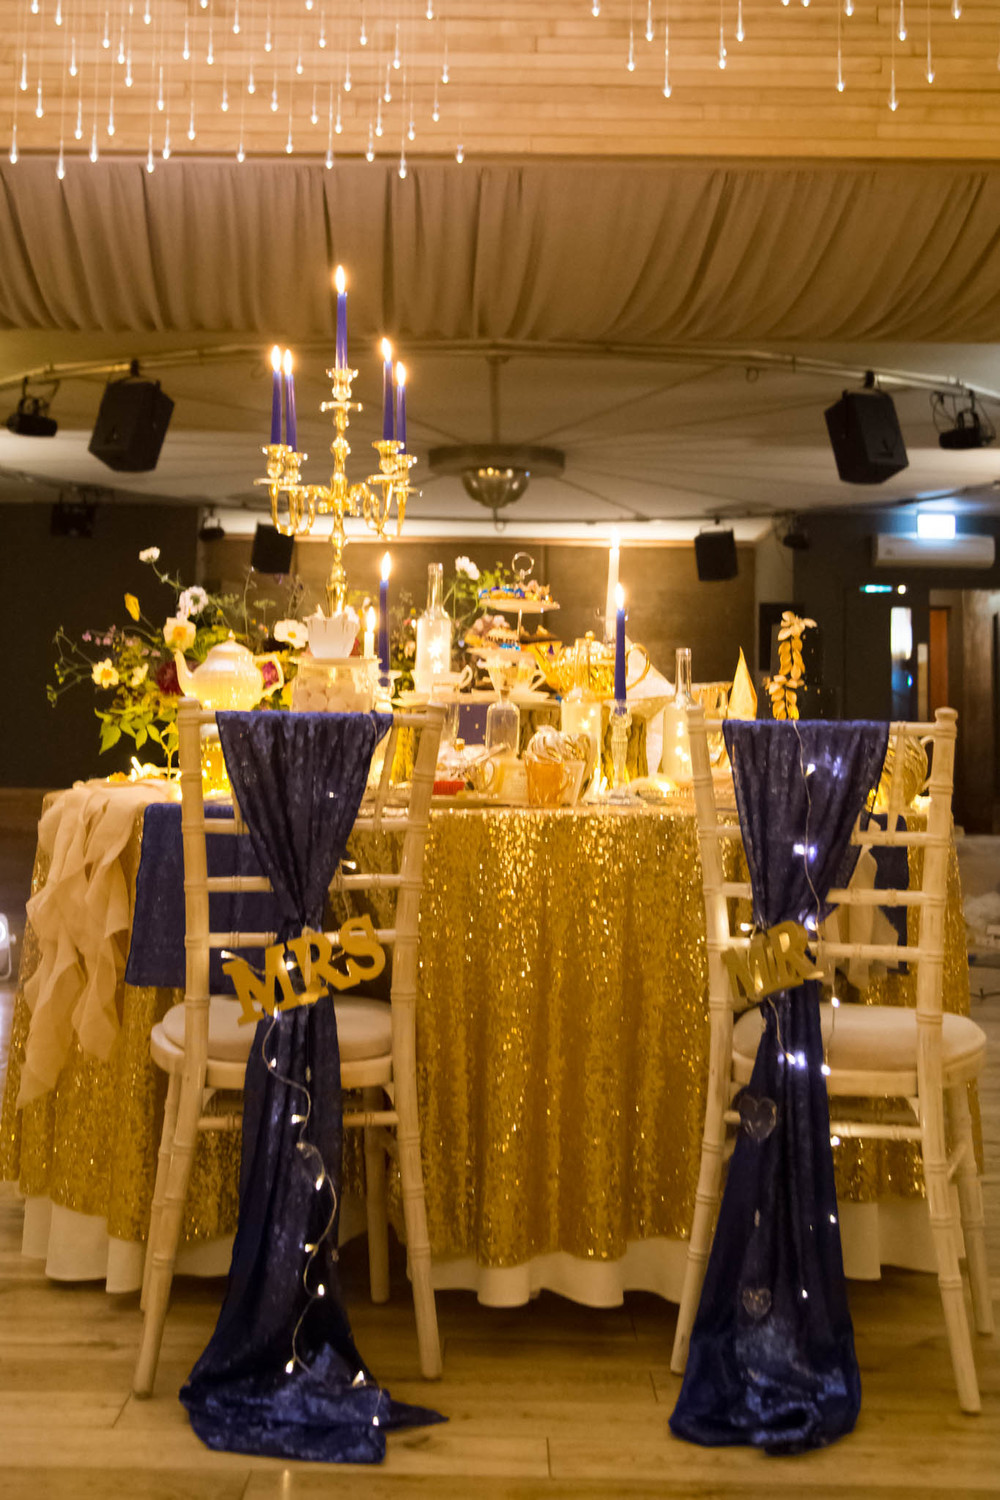 starry-night-themed-wedding-starry-night-themed-shoot-navy-and-gold-wedding-palette-laura-grace-photography-92